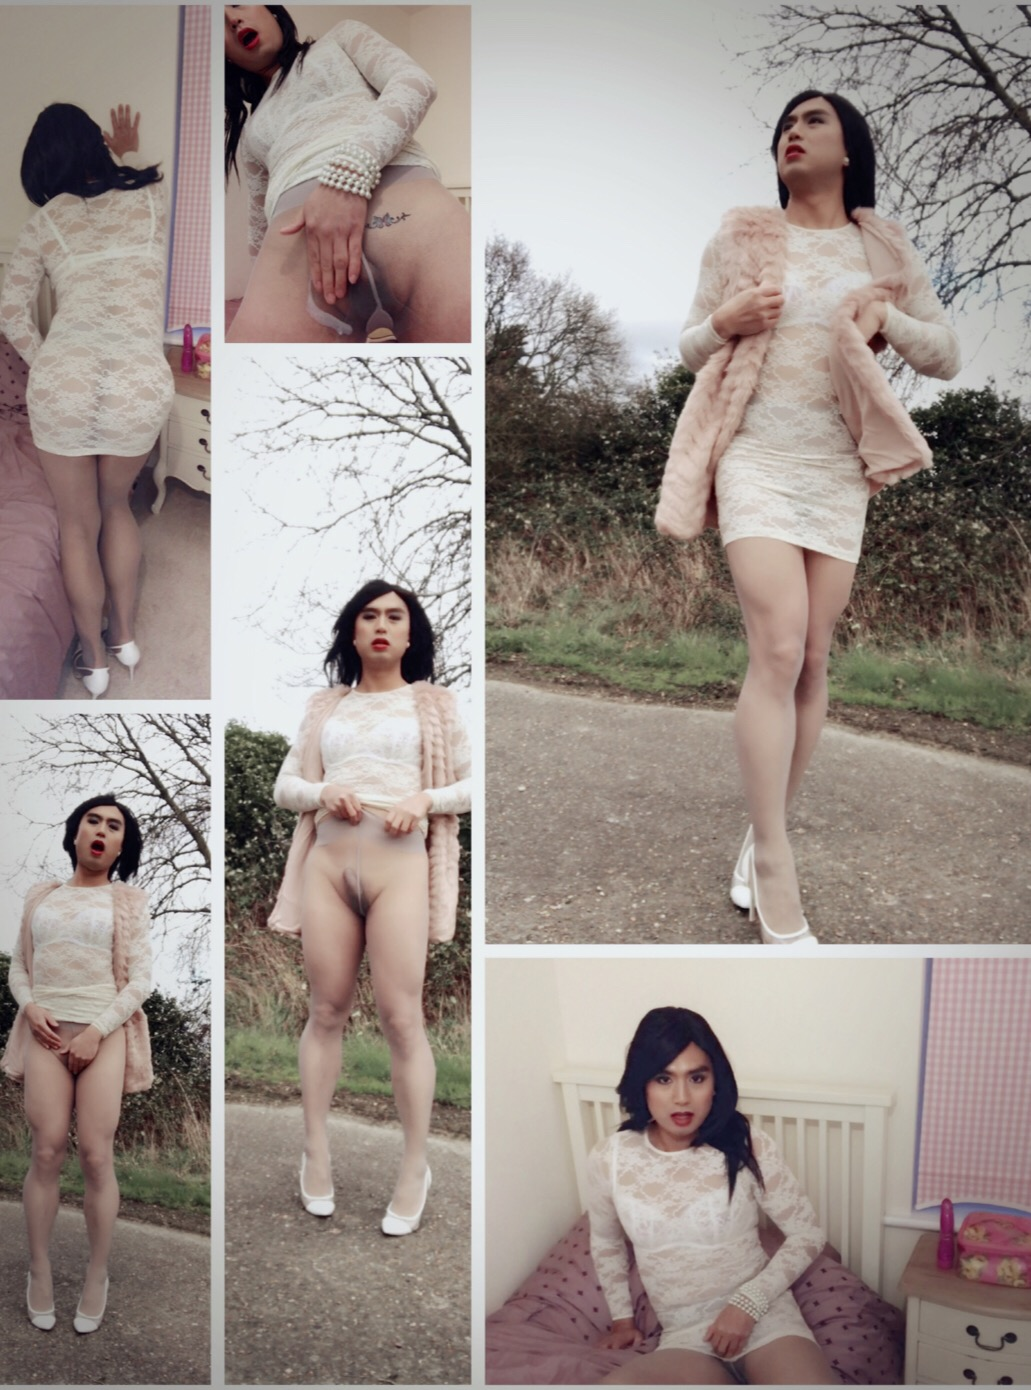 Shemale pantyhose outdoor exposure and masturbation